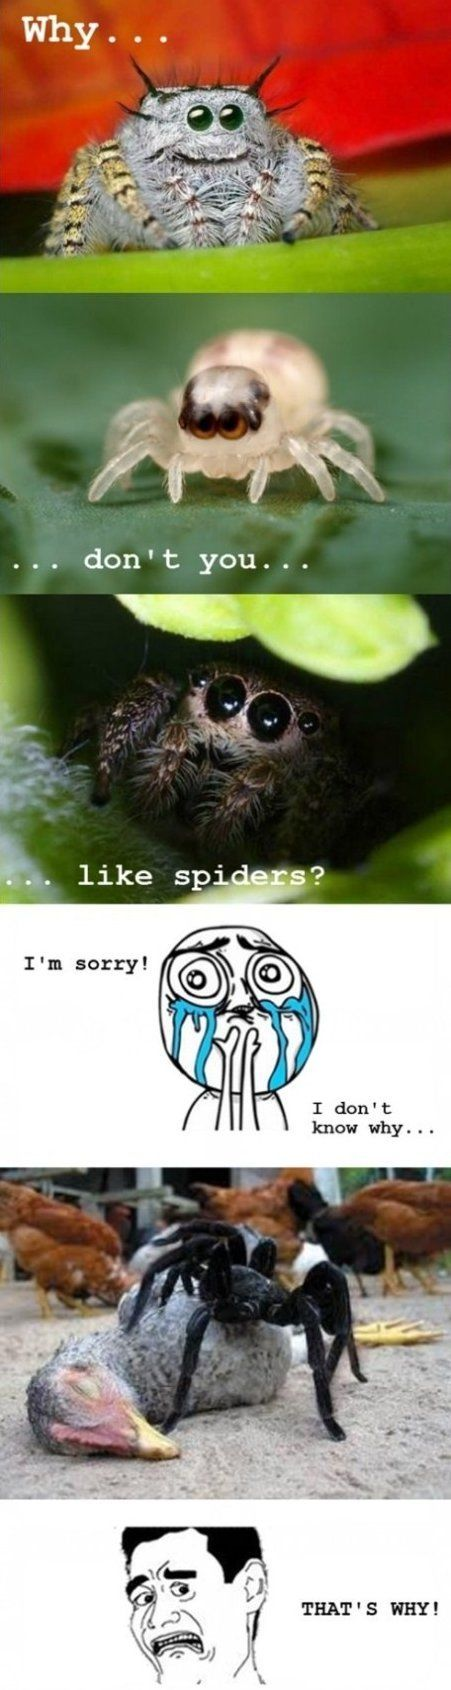 Why Don't You Like Spiders They Are So Cute, Click the link to view today's funniest pictures!